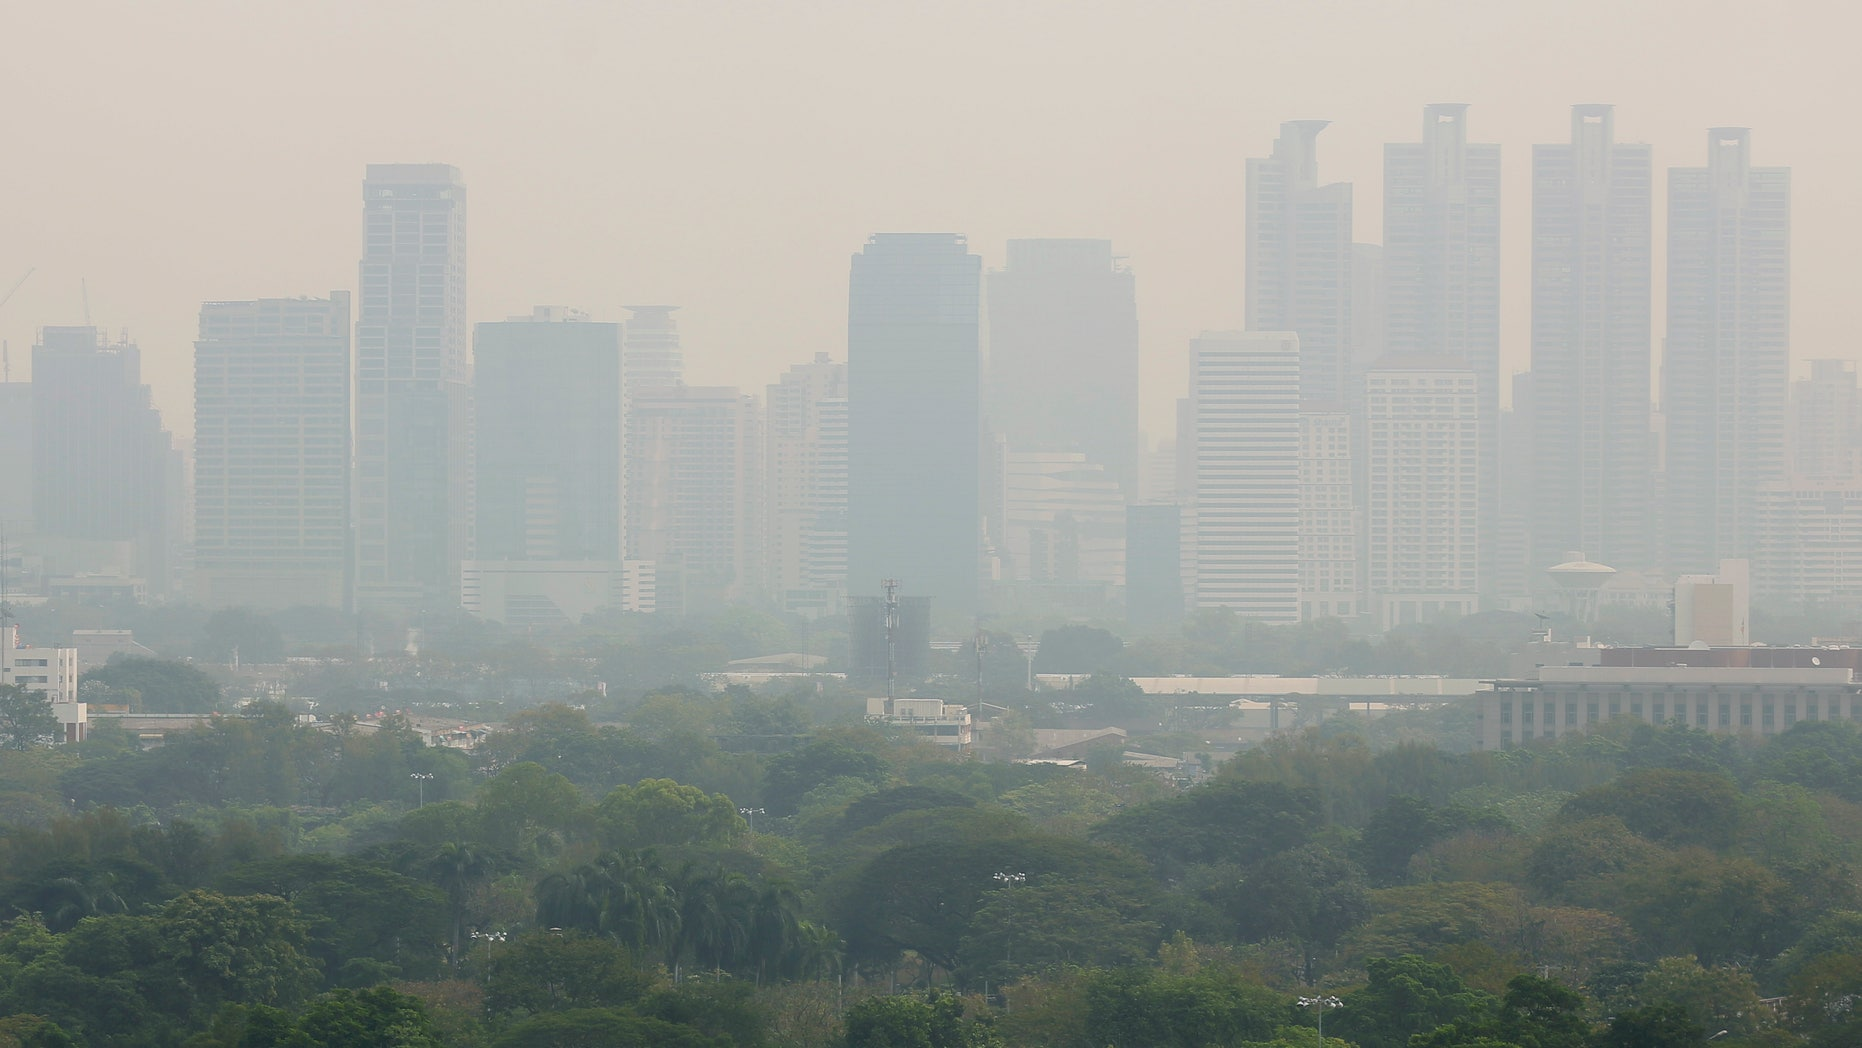 Toxic smog has forced Bangkok officials to close more than 400 schools this week to protect children from its effects